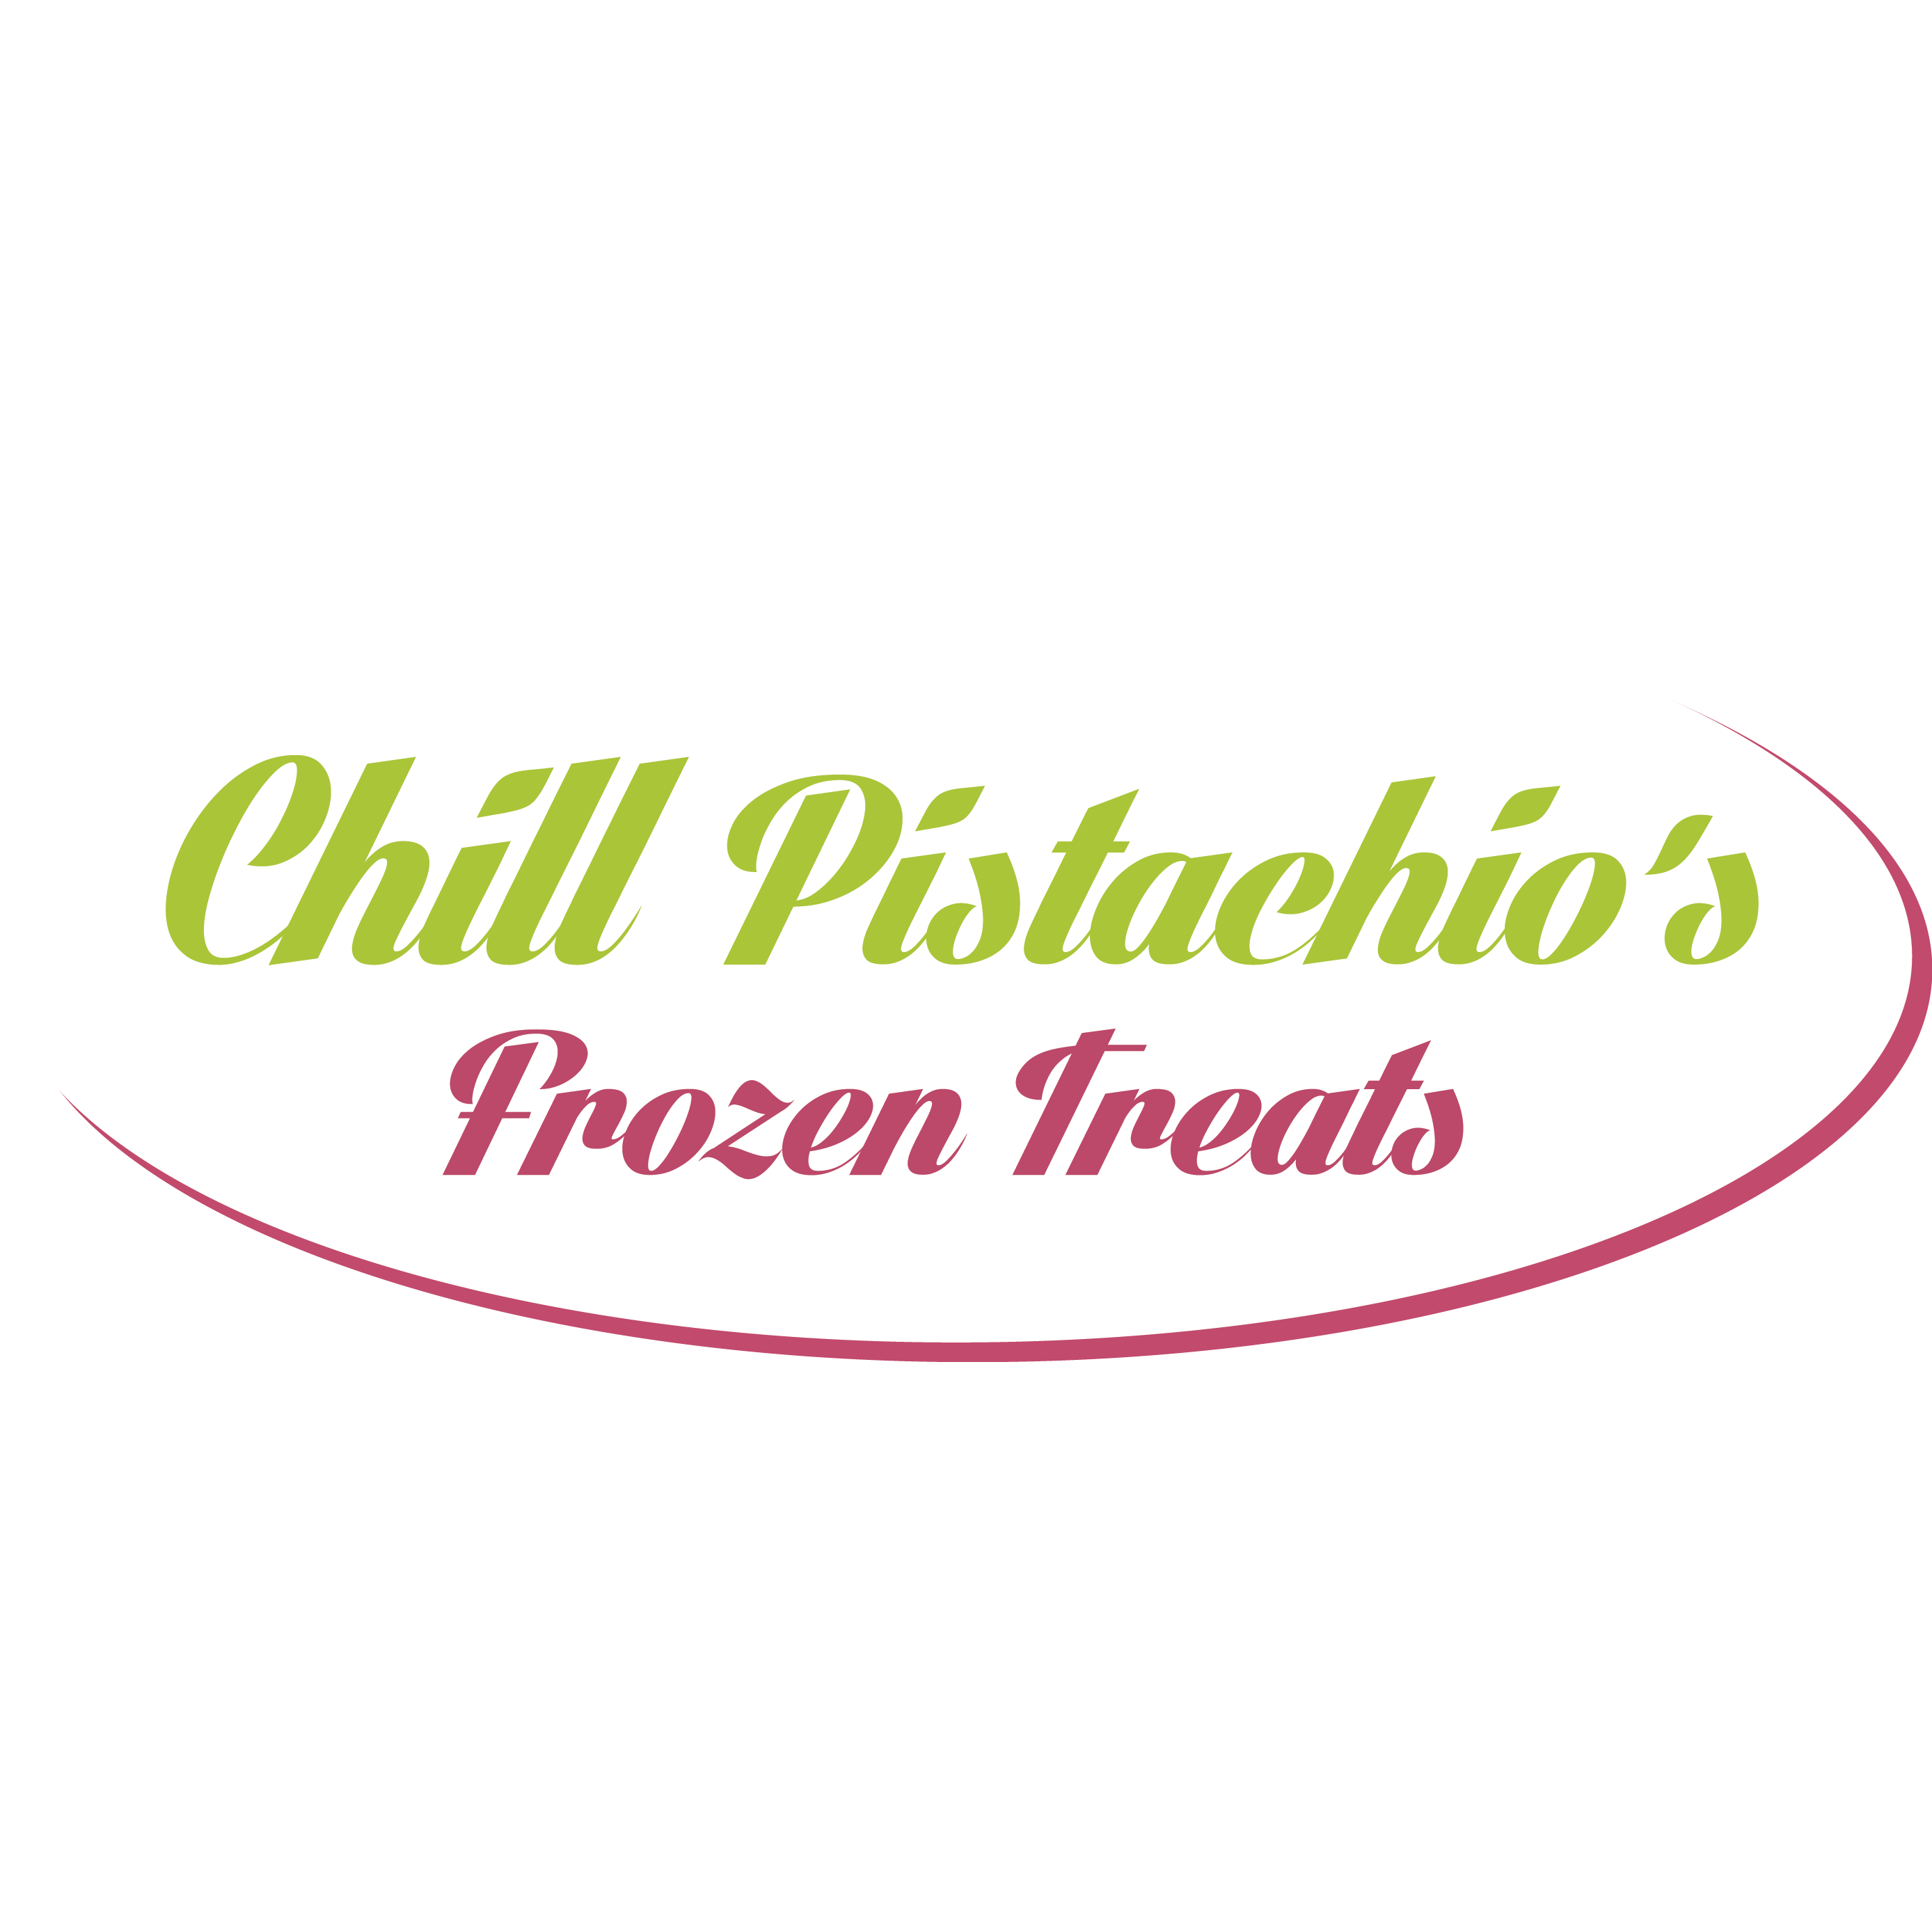 image of the Chill Pistachio's Frozen Treats